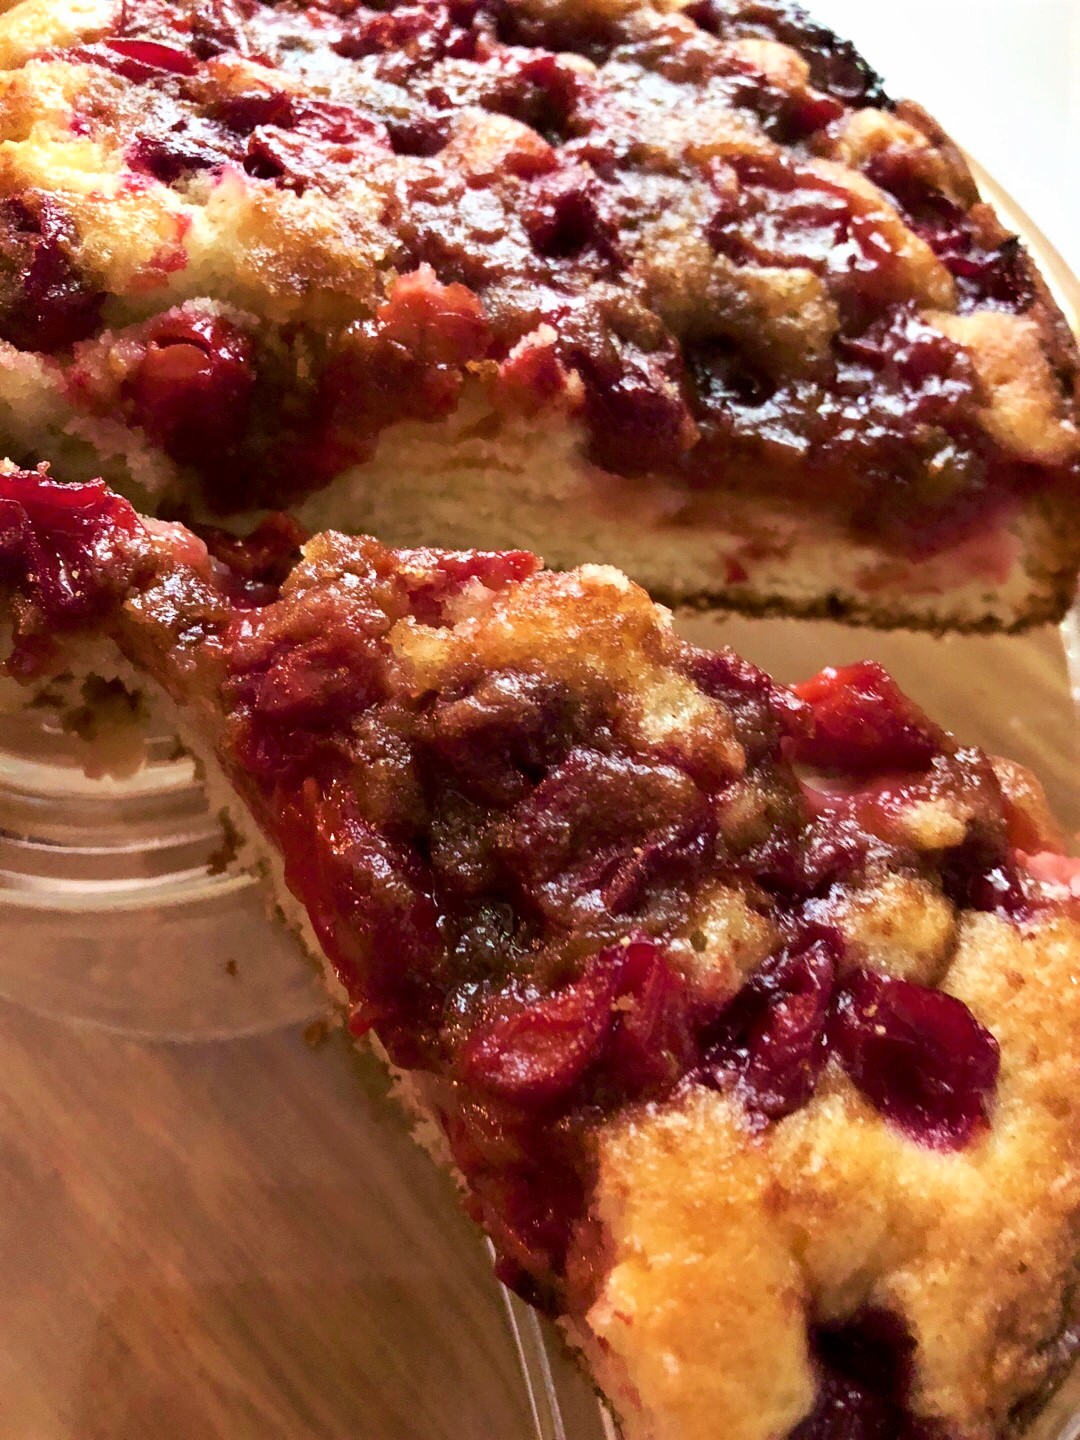 Same recipe with Sour Cherries